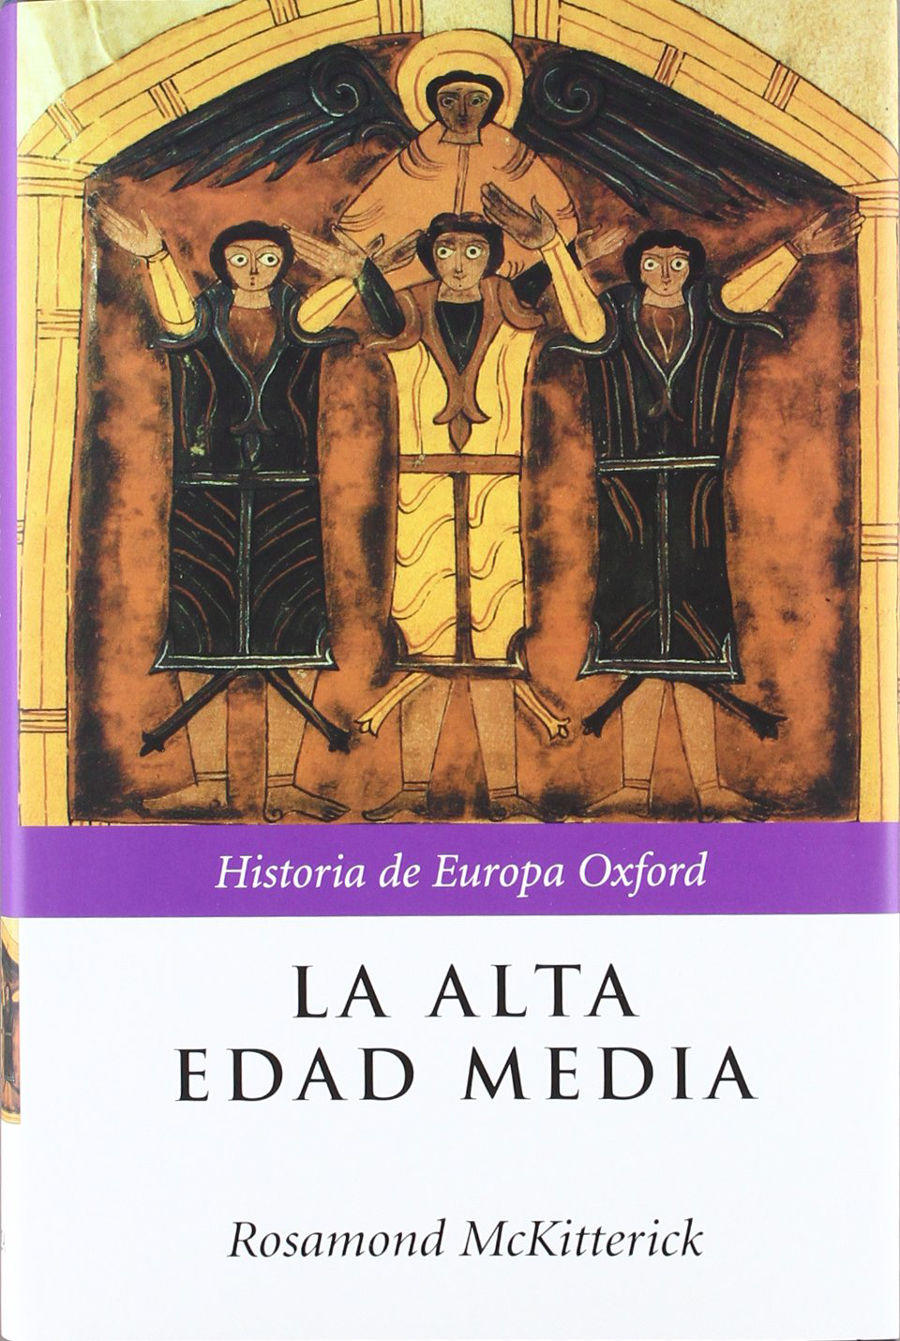 La alta edad media Book Cover